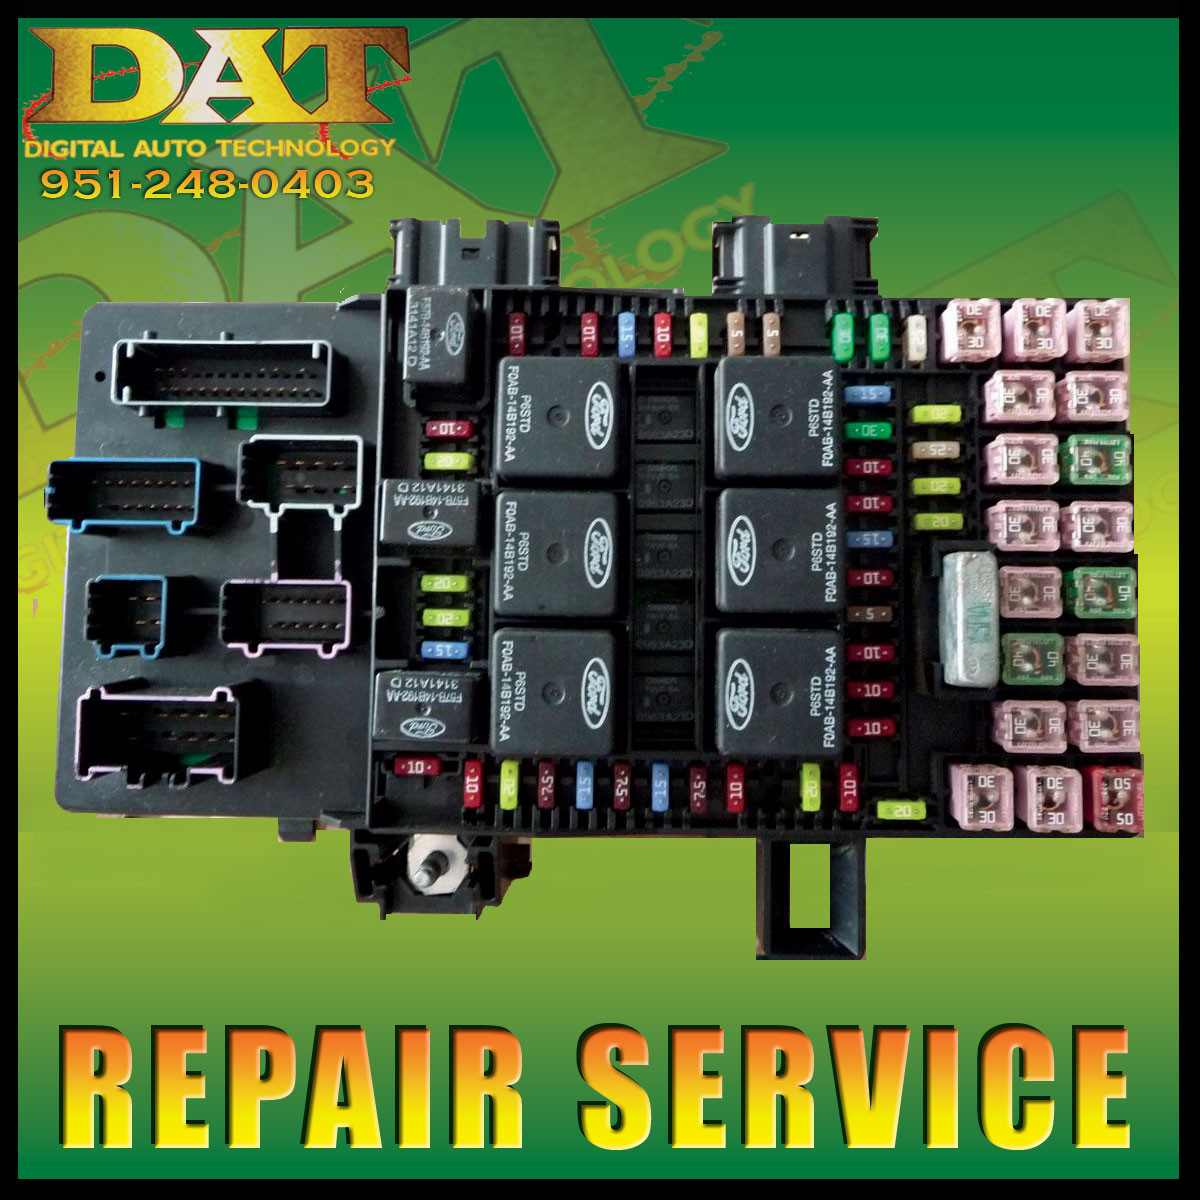 Ford Expedition Lincoln Navigator Fuse Box (2003-2006) *Repair Service*Digital Auto Technology